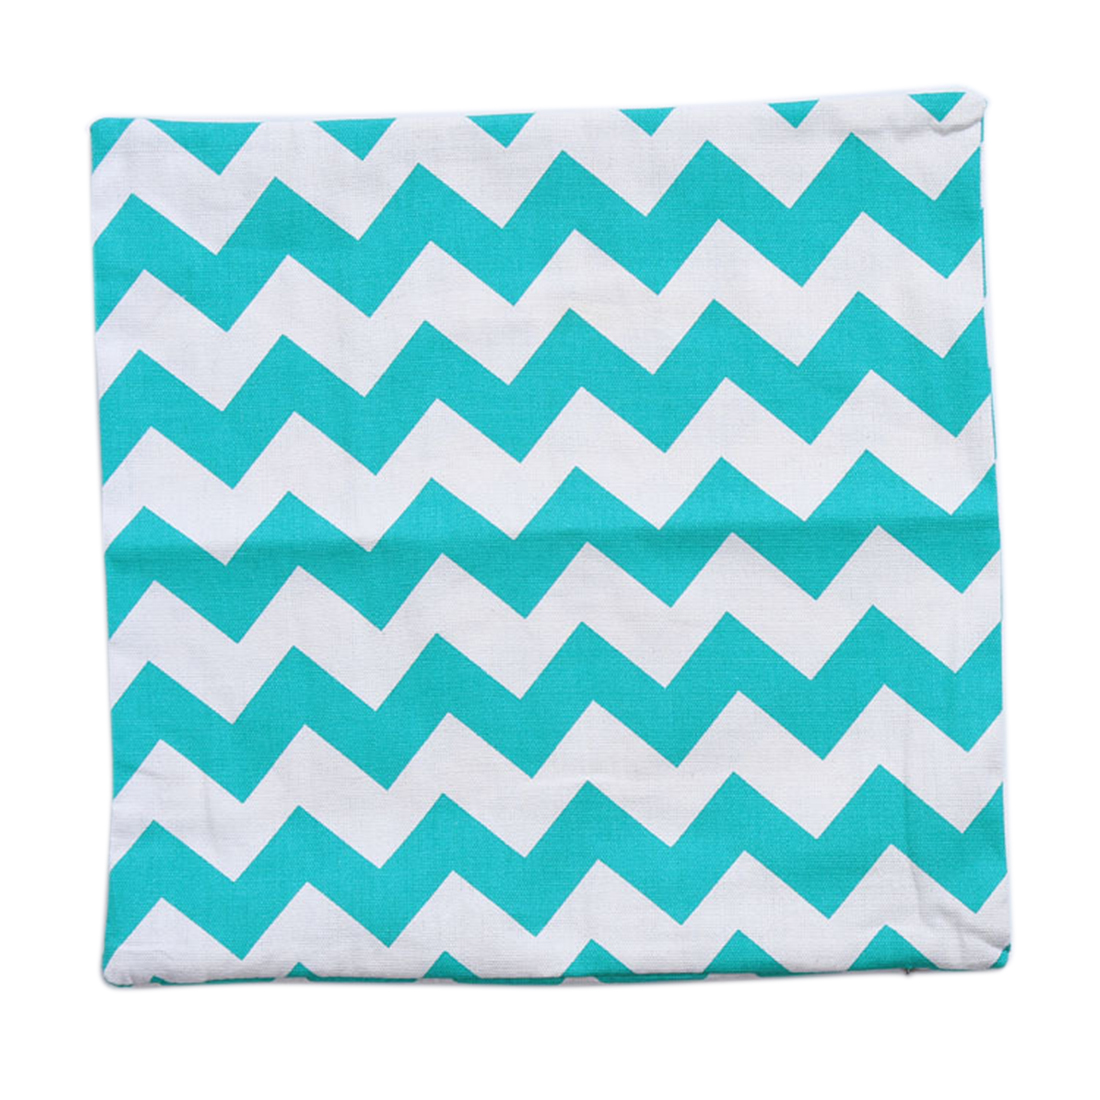 Piccocasa Sofa Bed Throw Cushion Pillow Cover Case Green Blue White 45 x 45cm